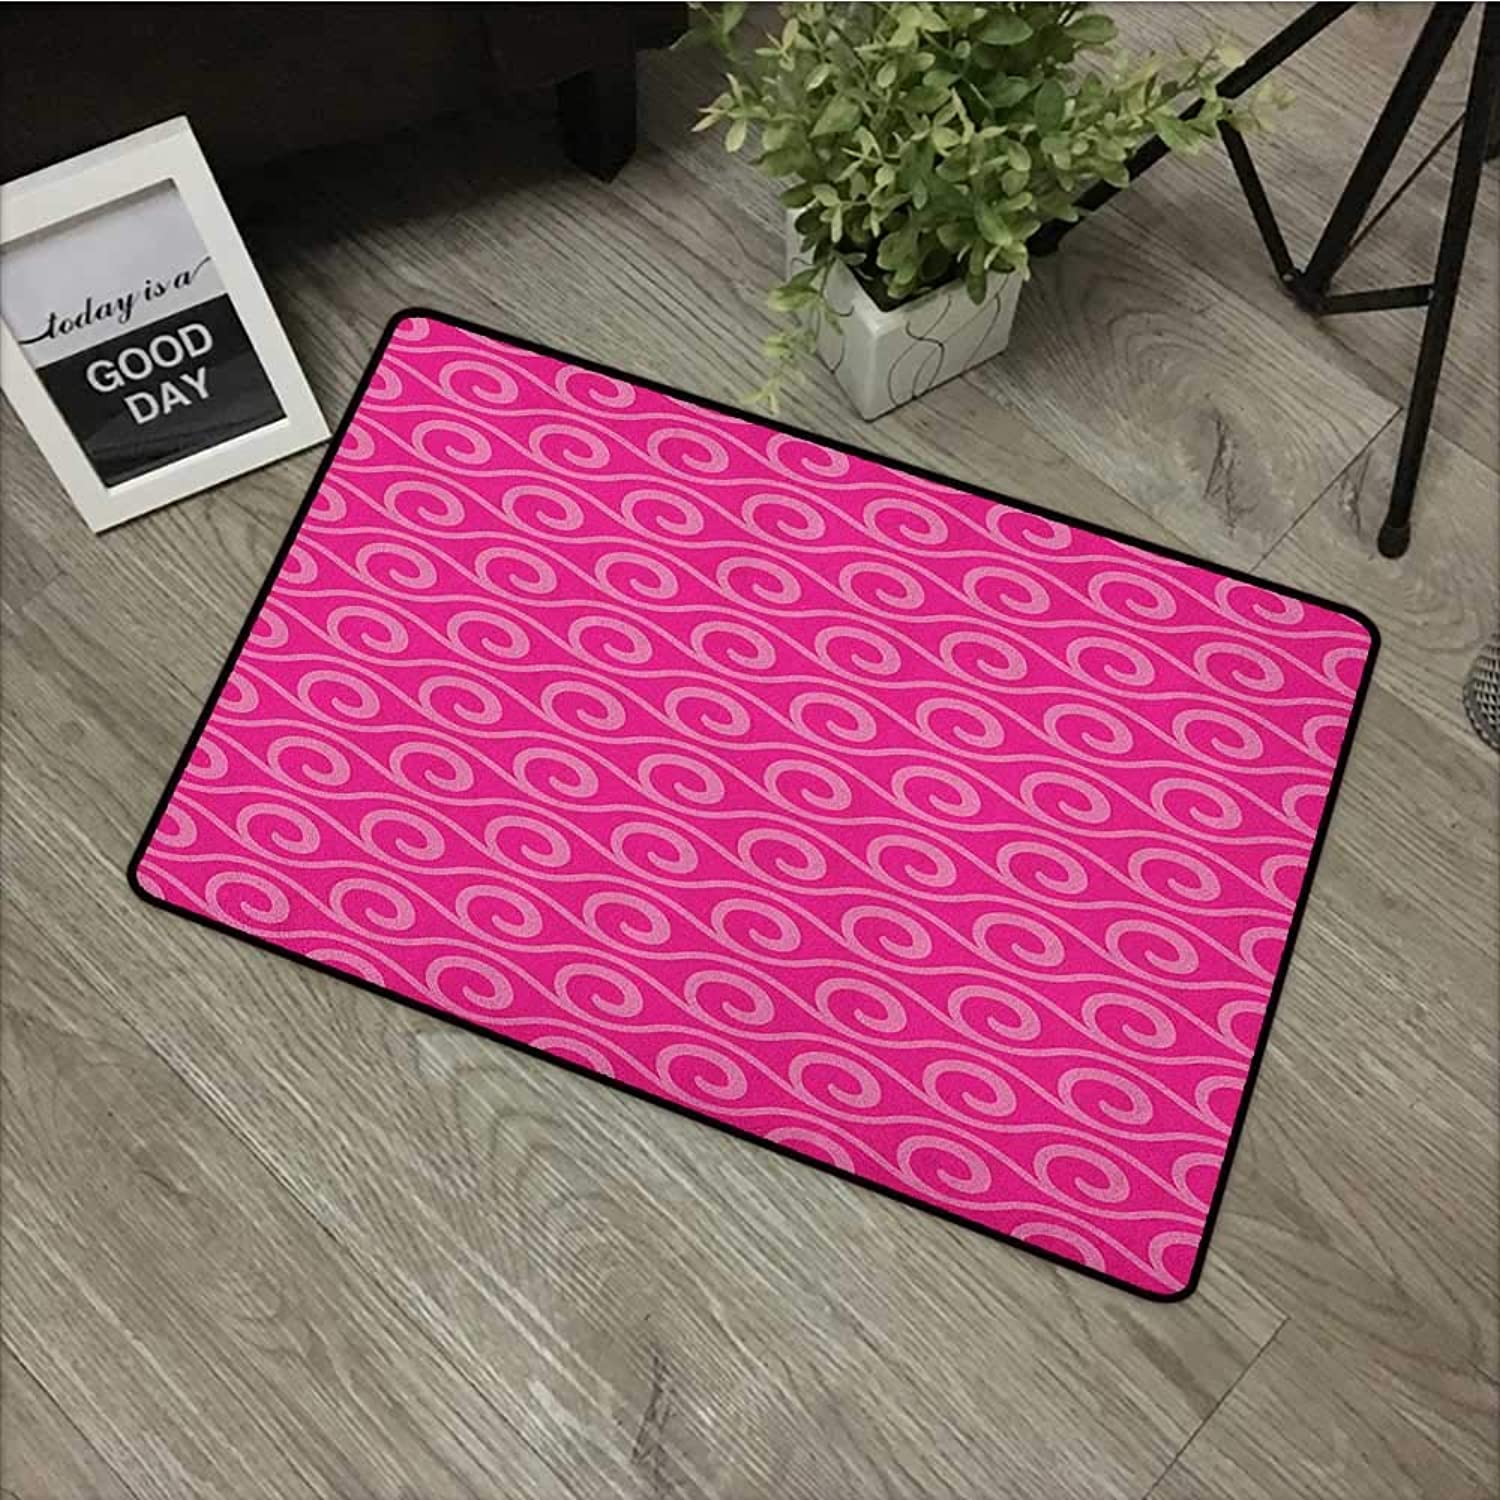 Bedroom Door mat W35 x L59 INCH Hot Pink,Ocean Waves Inspired Abstract Fantasy Pattern with Horizontal Curves and Lines, Pink Pale Pink Non-Slip Door Mat Carpet